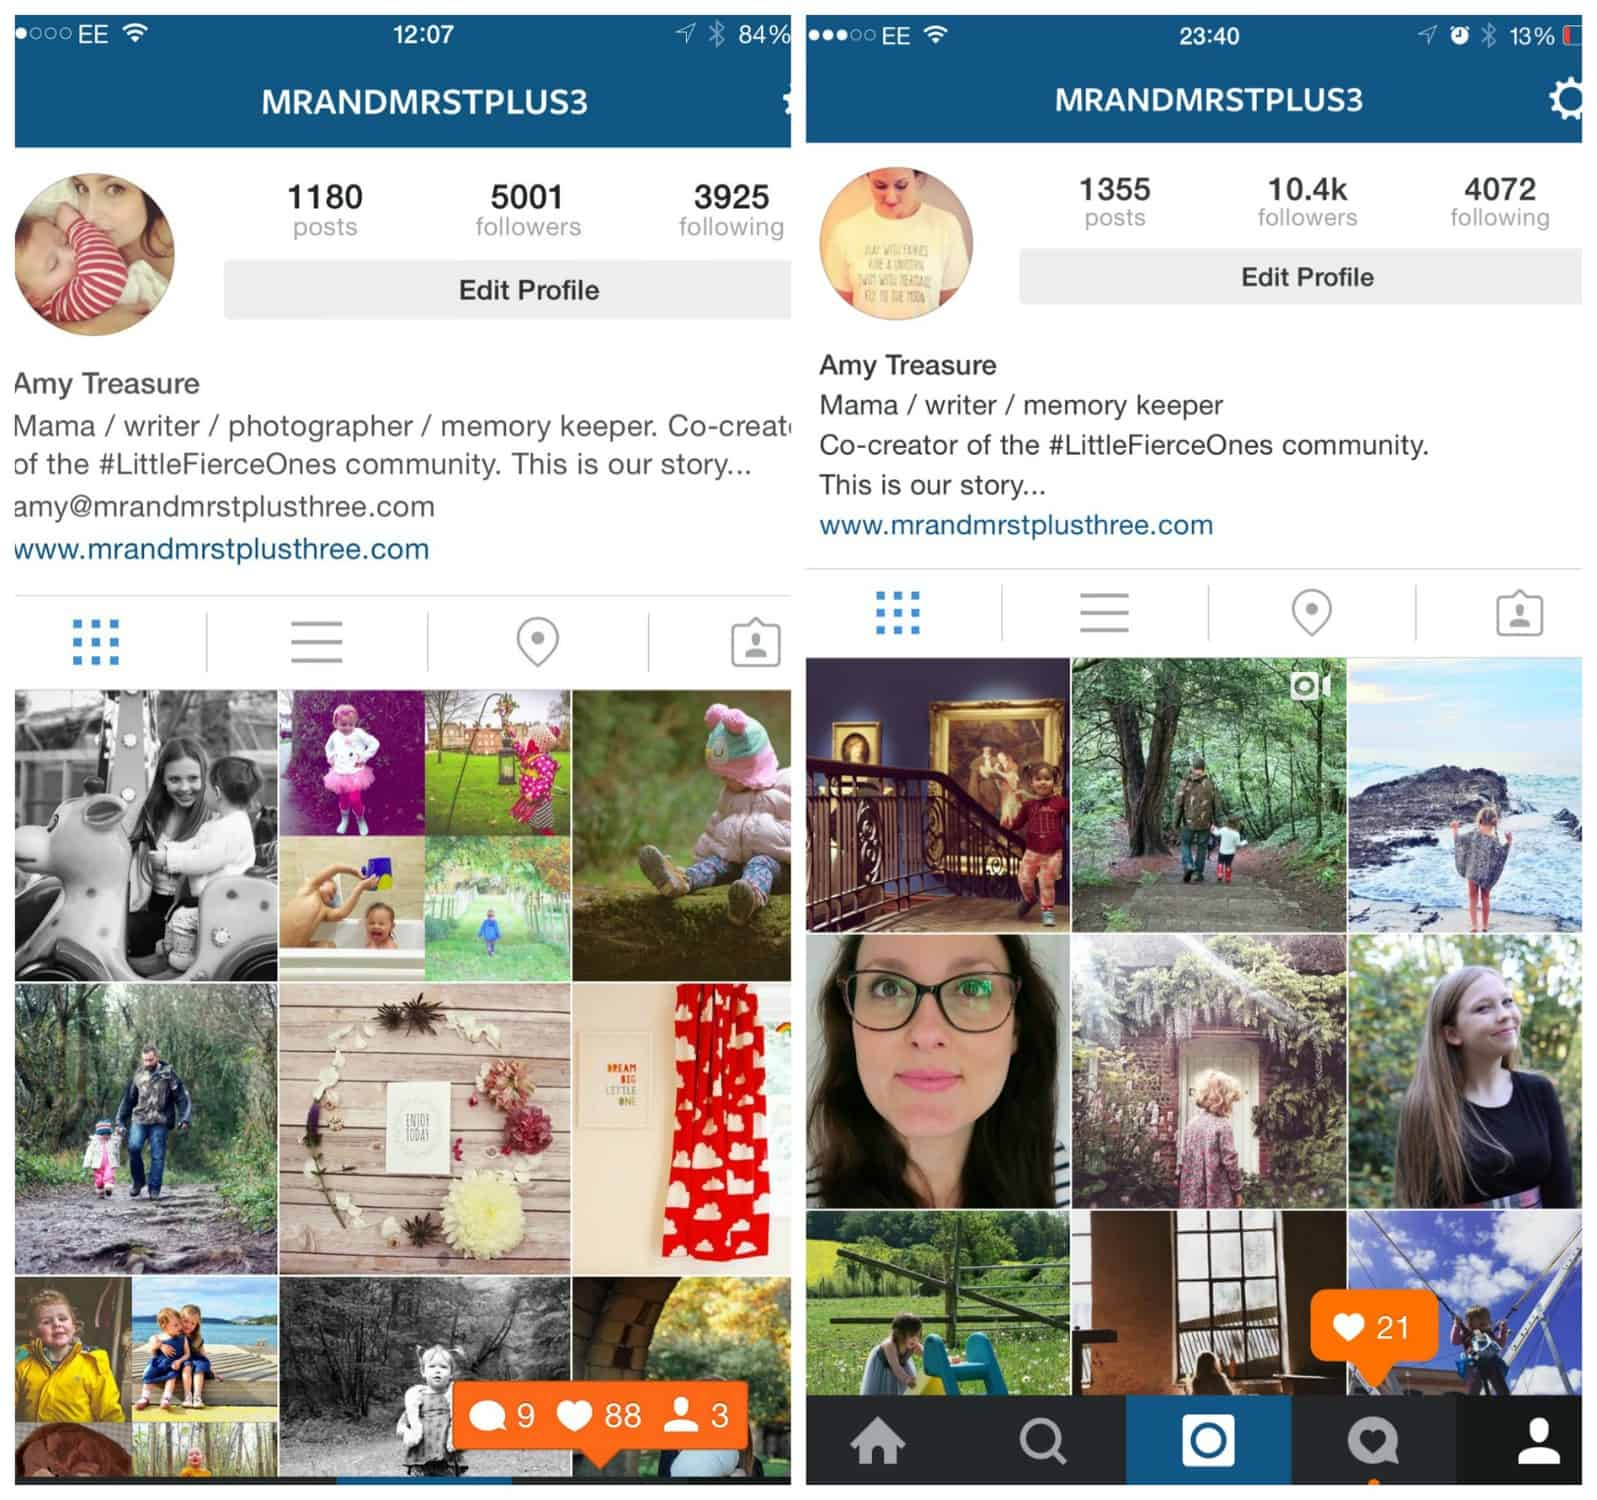 IG snapshot follower numbers compared side by side. How I doubled my follower numbers from 5k to 10k